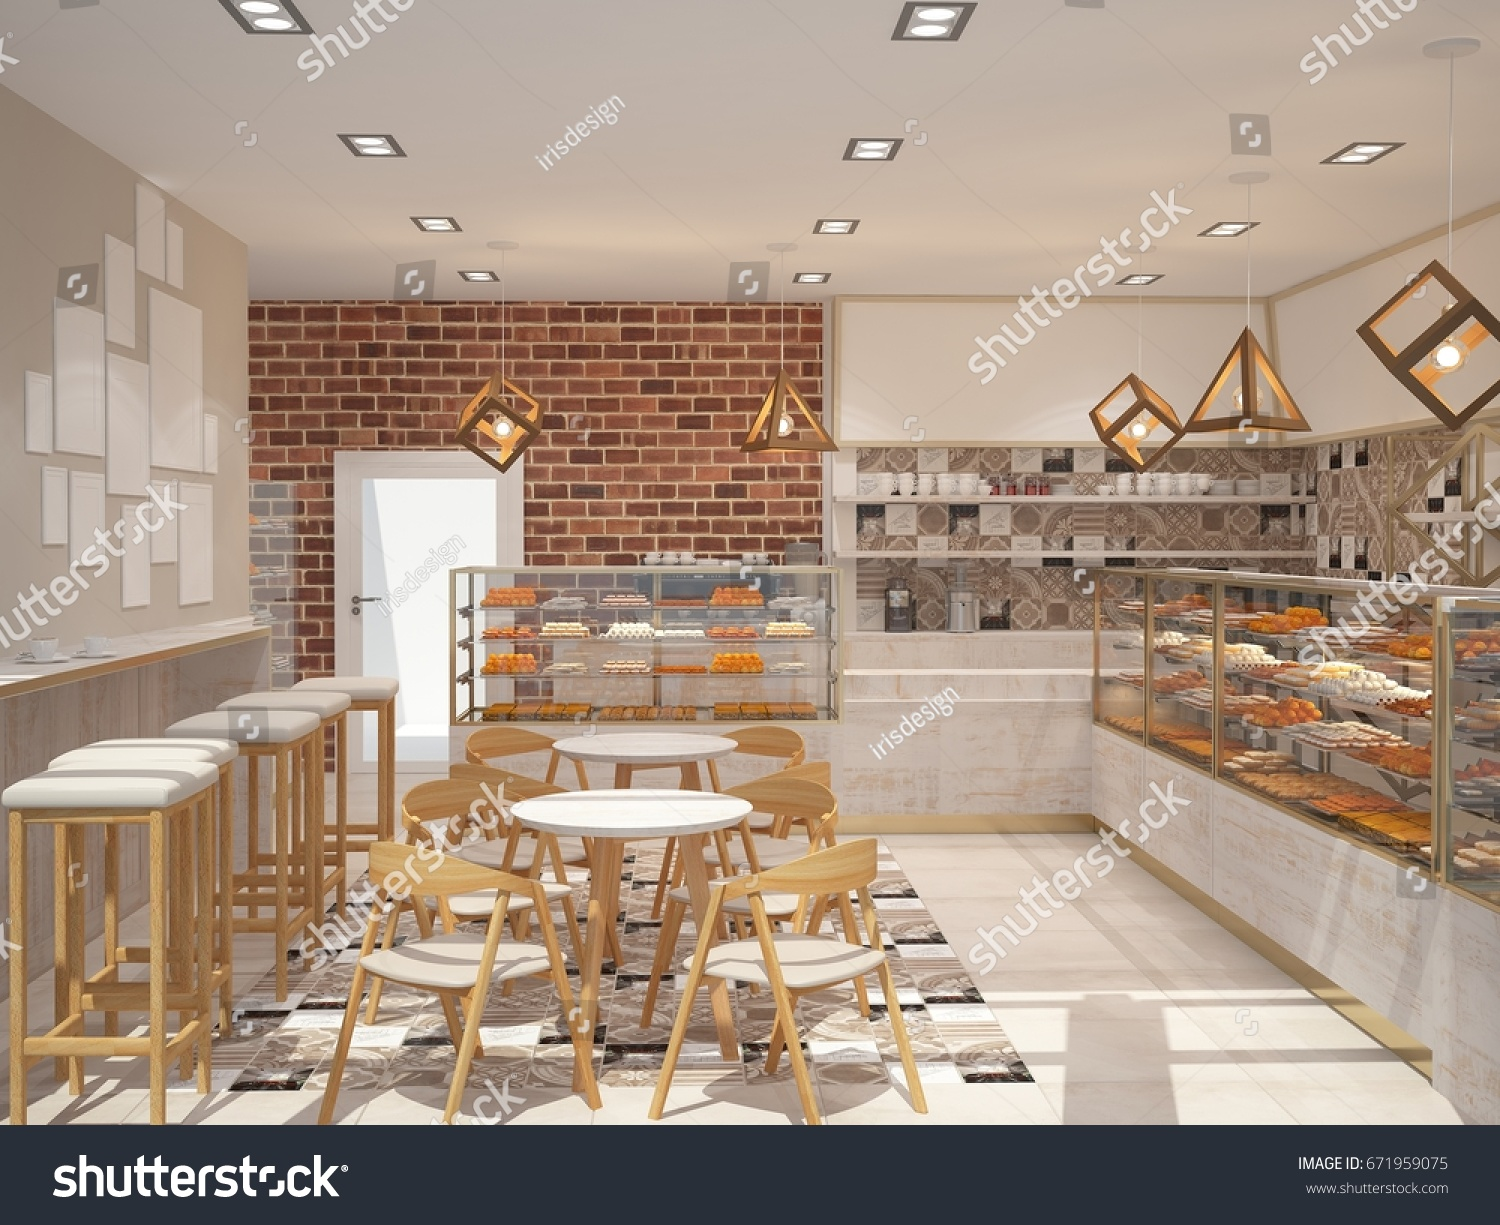 bakery interior design photos, best bakery interior design ideas ...